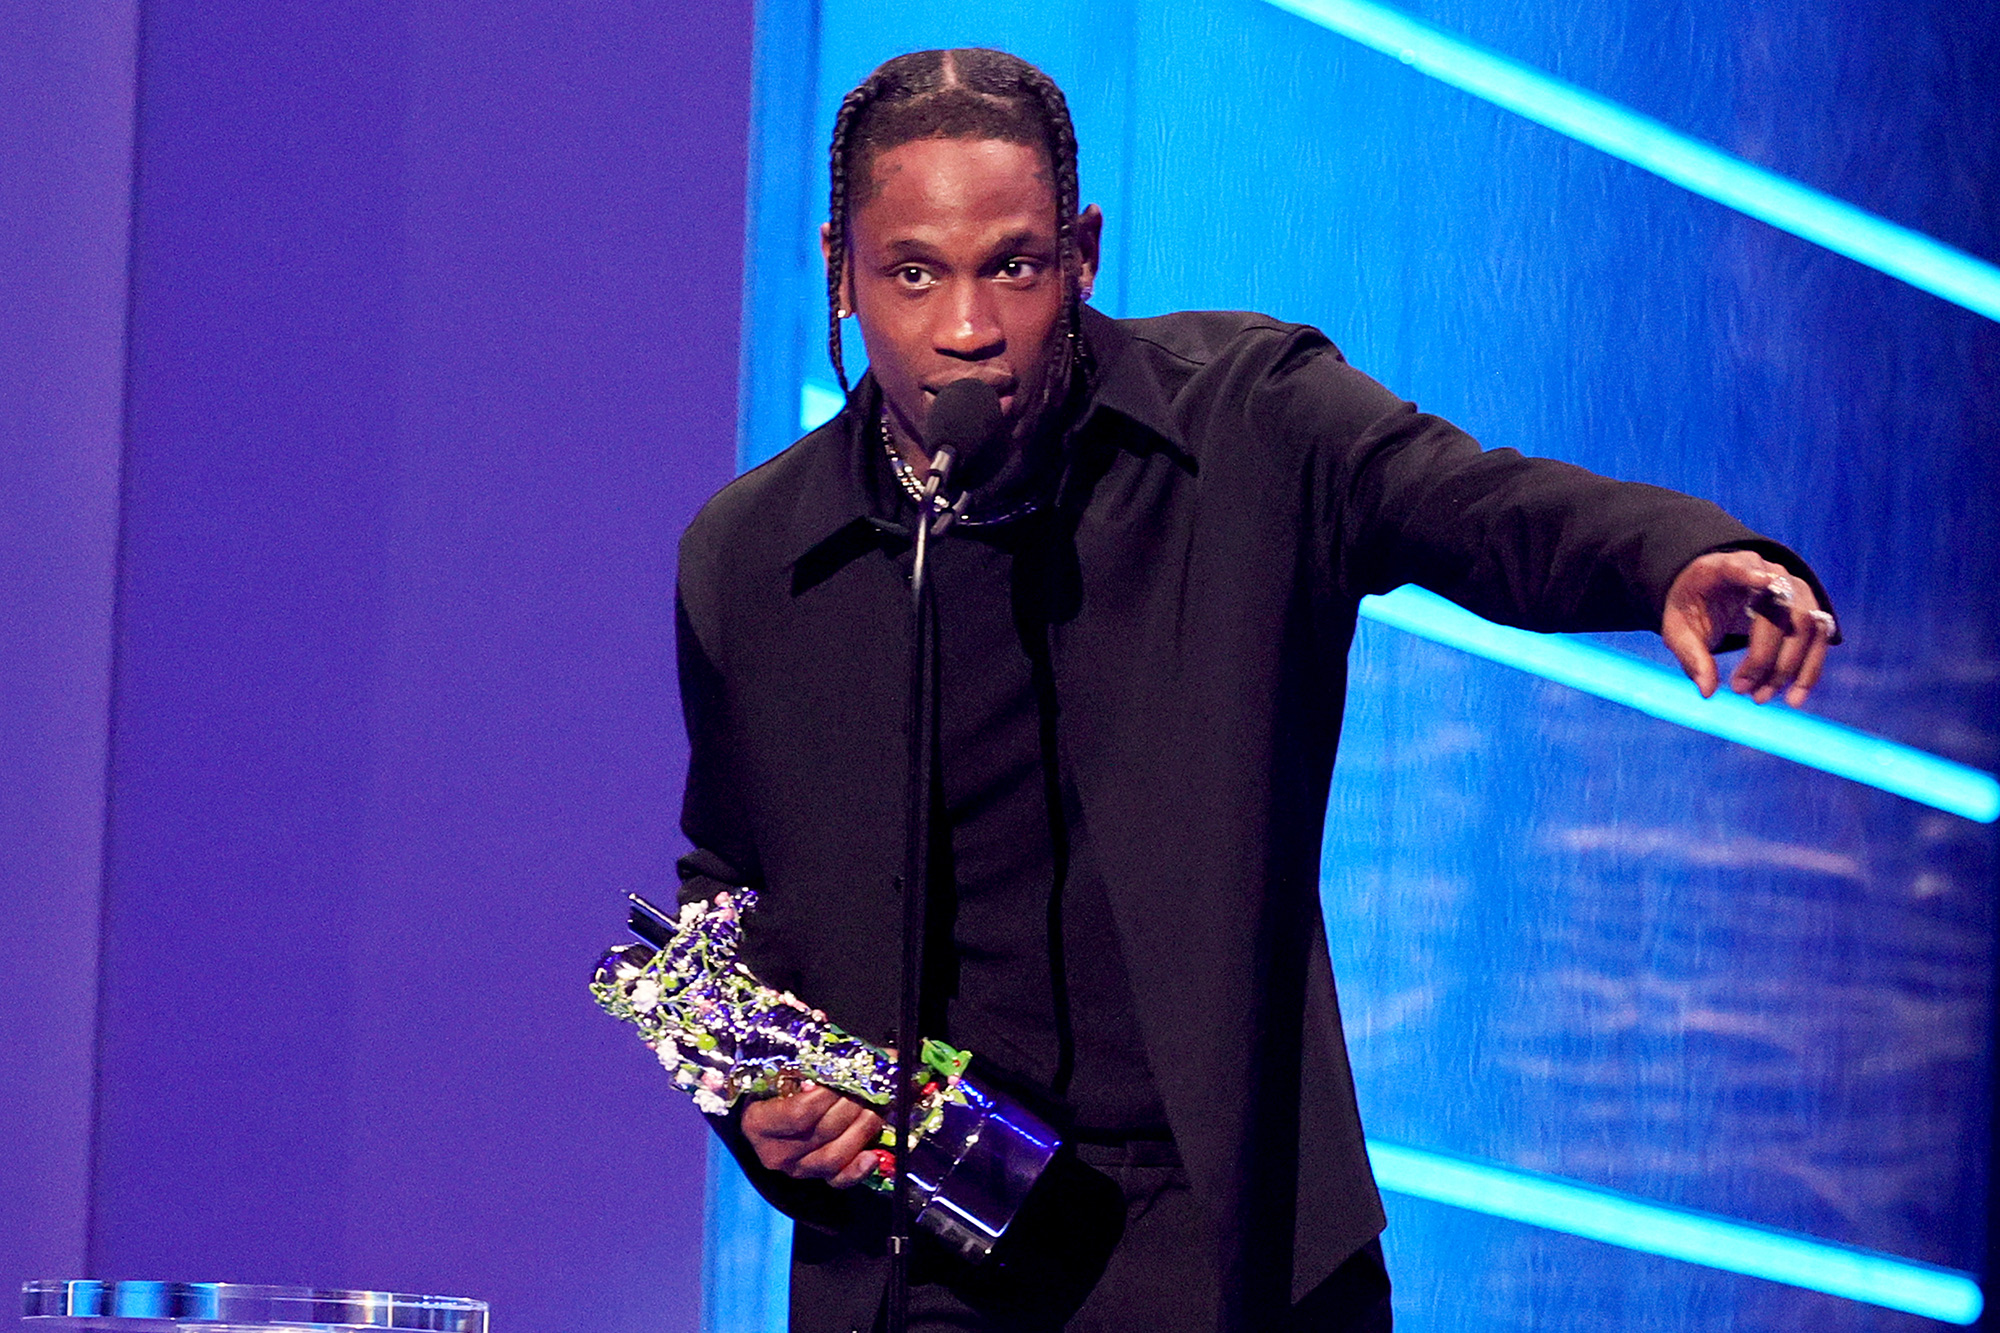 """Travis Scott accepts the Best Hip Hop award for """"Franchise"""" onstage during the 2021 MTV Video Music Awards at Barclays Center on September 12, 2021 in the Brooklyn borough of New York City"""